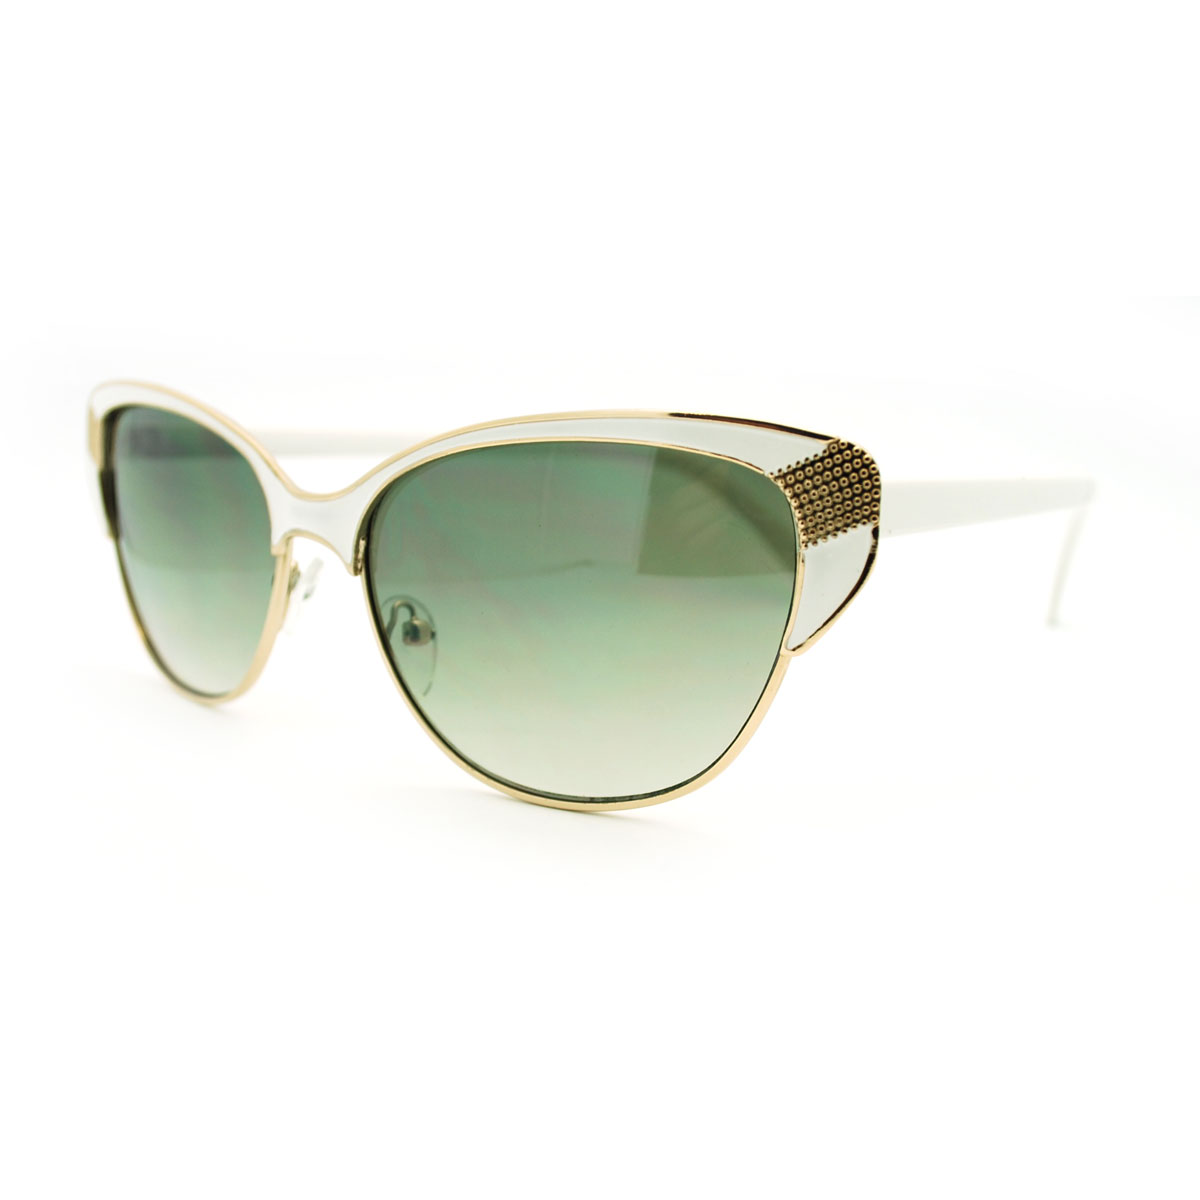 Retro Metal Frame Cat Eye Half Rim Sunglasses - White eBay